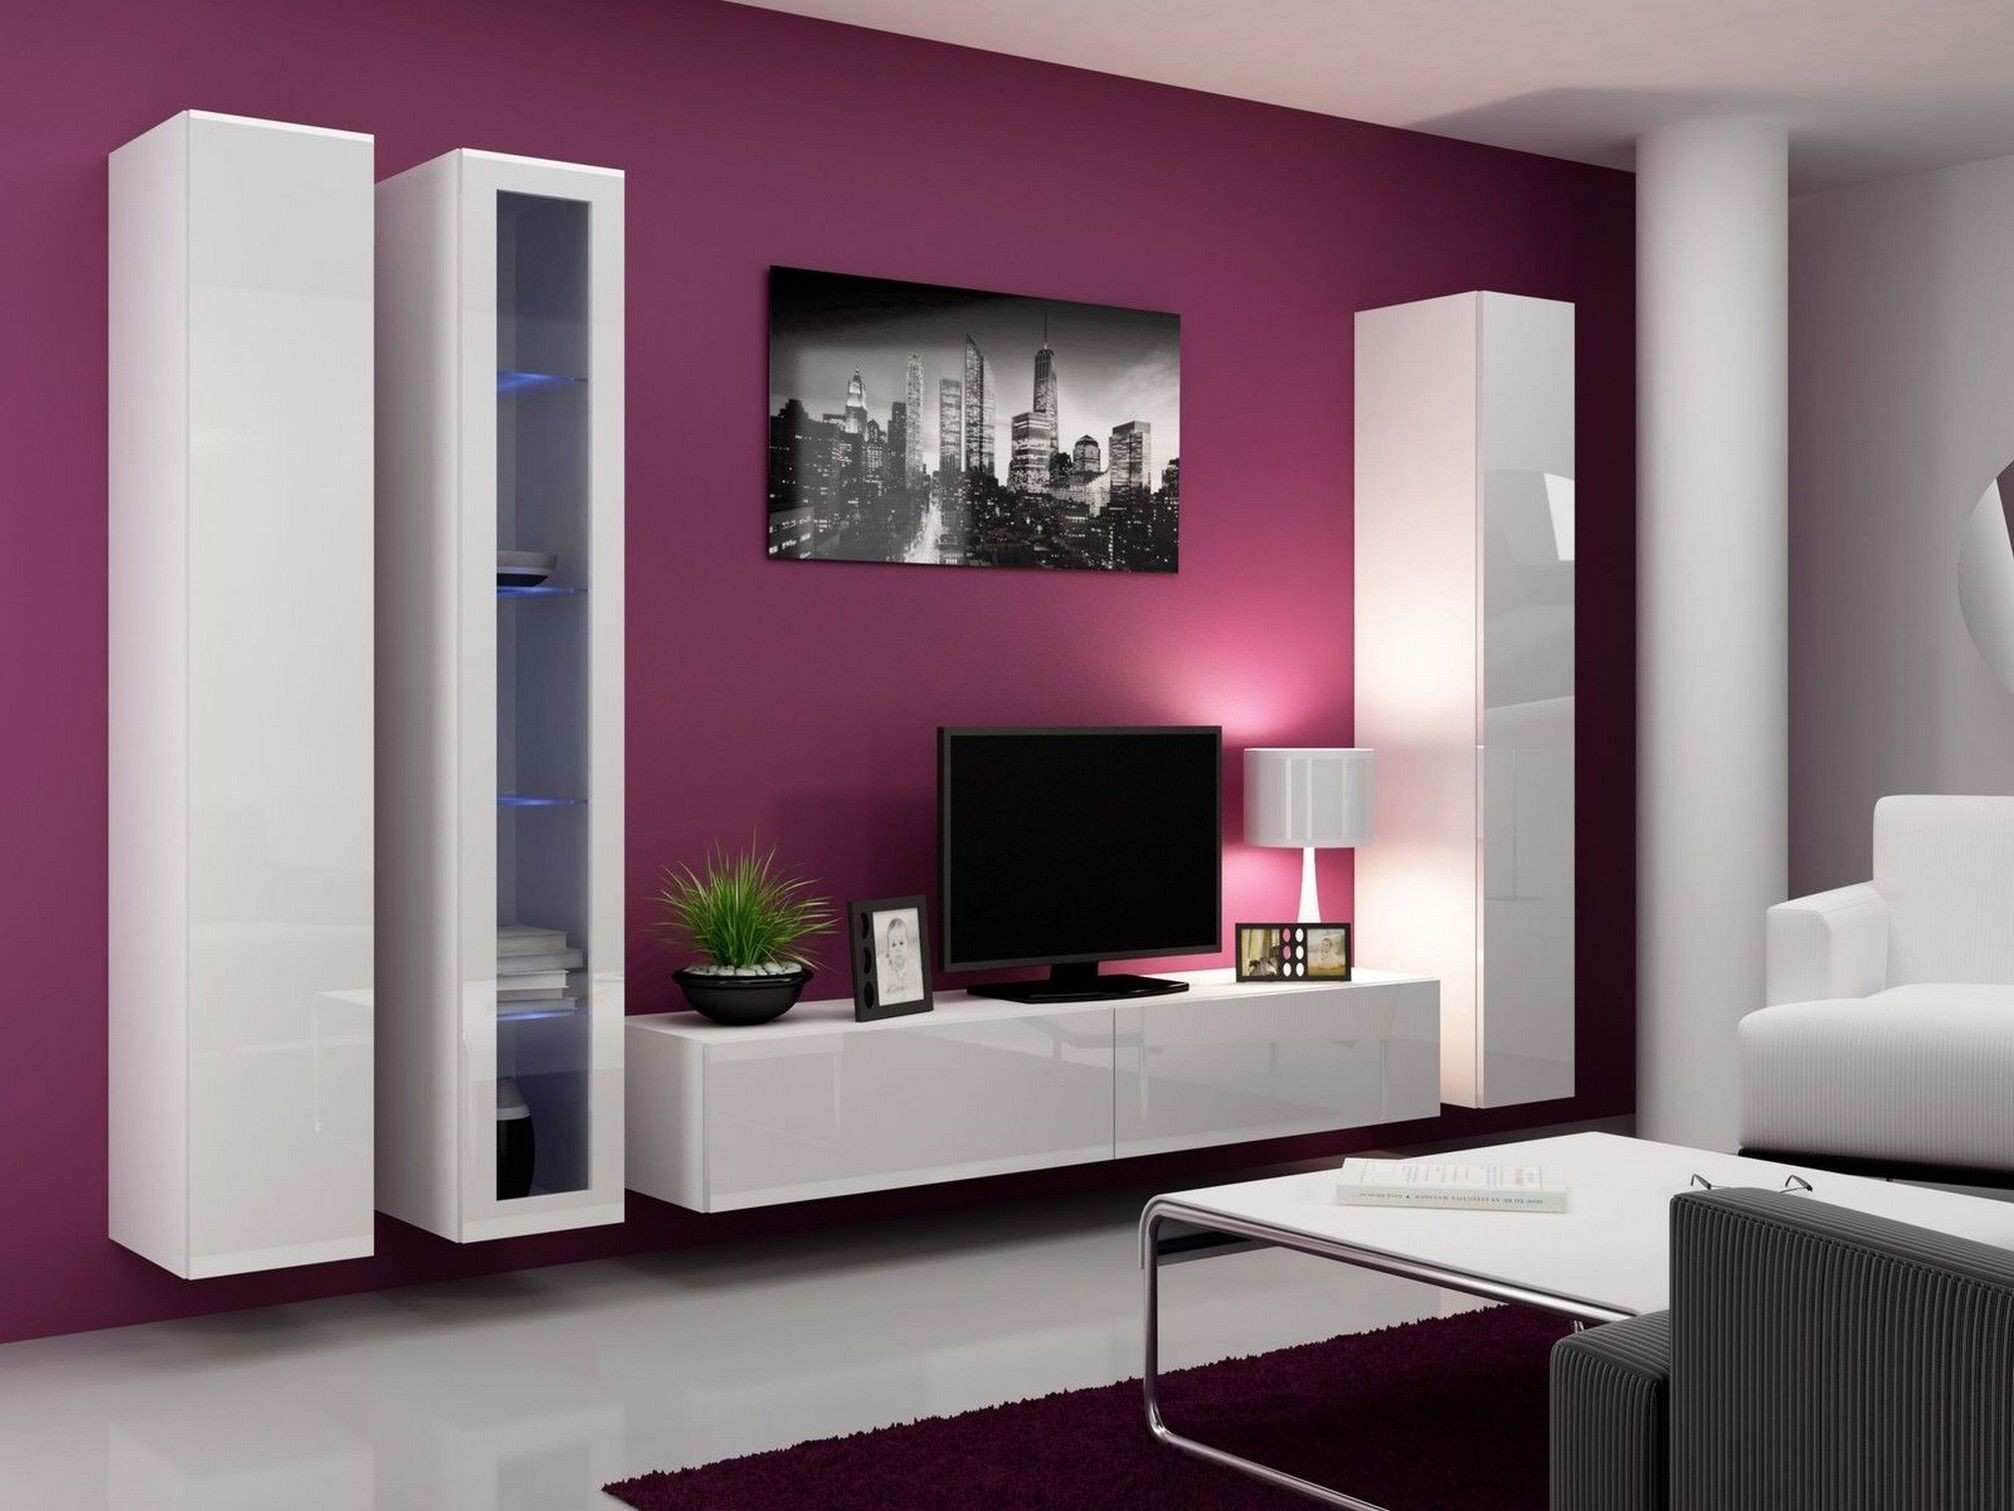 Wall Mounted TV Unit Furniture Pink Color Schemes Ideas For